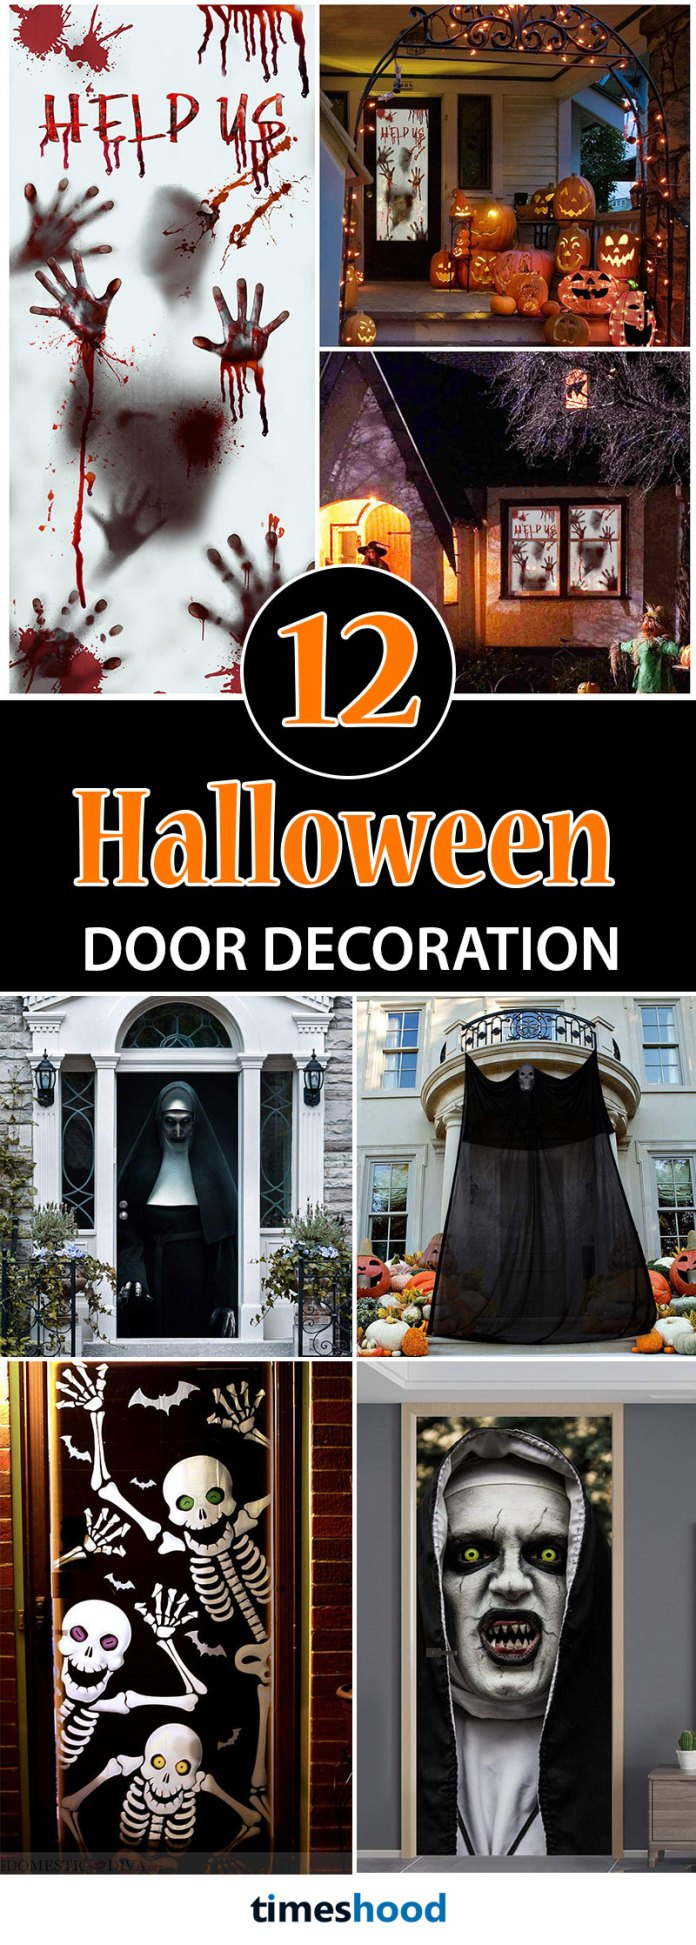 Dress up your front porch into the Halloween spirit with these fun and spooky Halloween decorations to welcome your guests. Get 12 more low budget creative Halloween Front door Decorations ideas from Amazon.